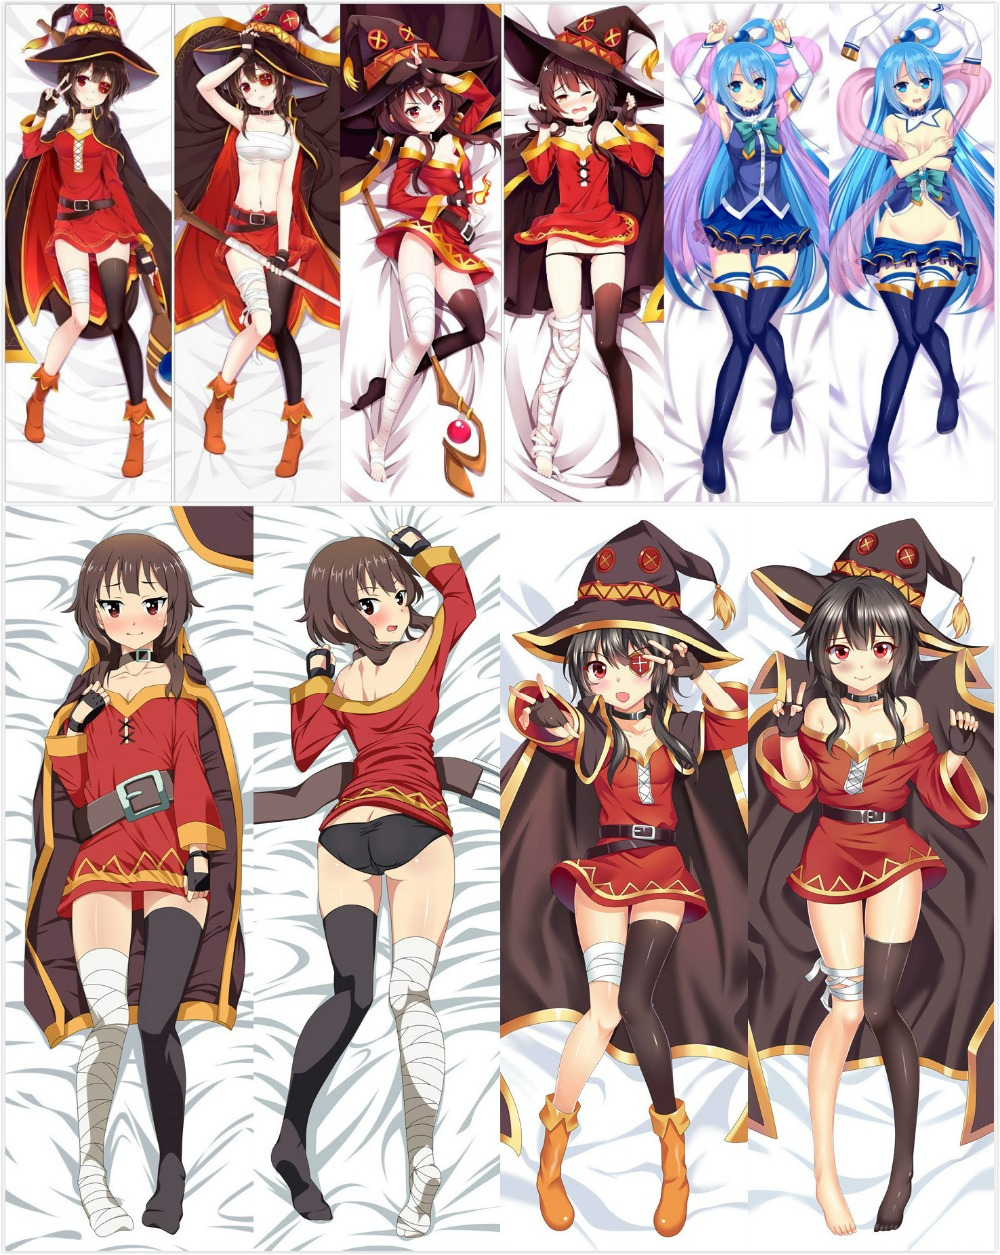 "59/"" KonoSuba Dakimakura Megumin Anime Girl Hugging Body Pillow Case Cover"